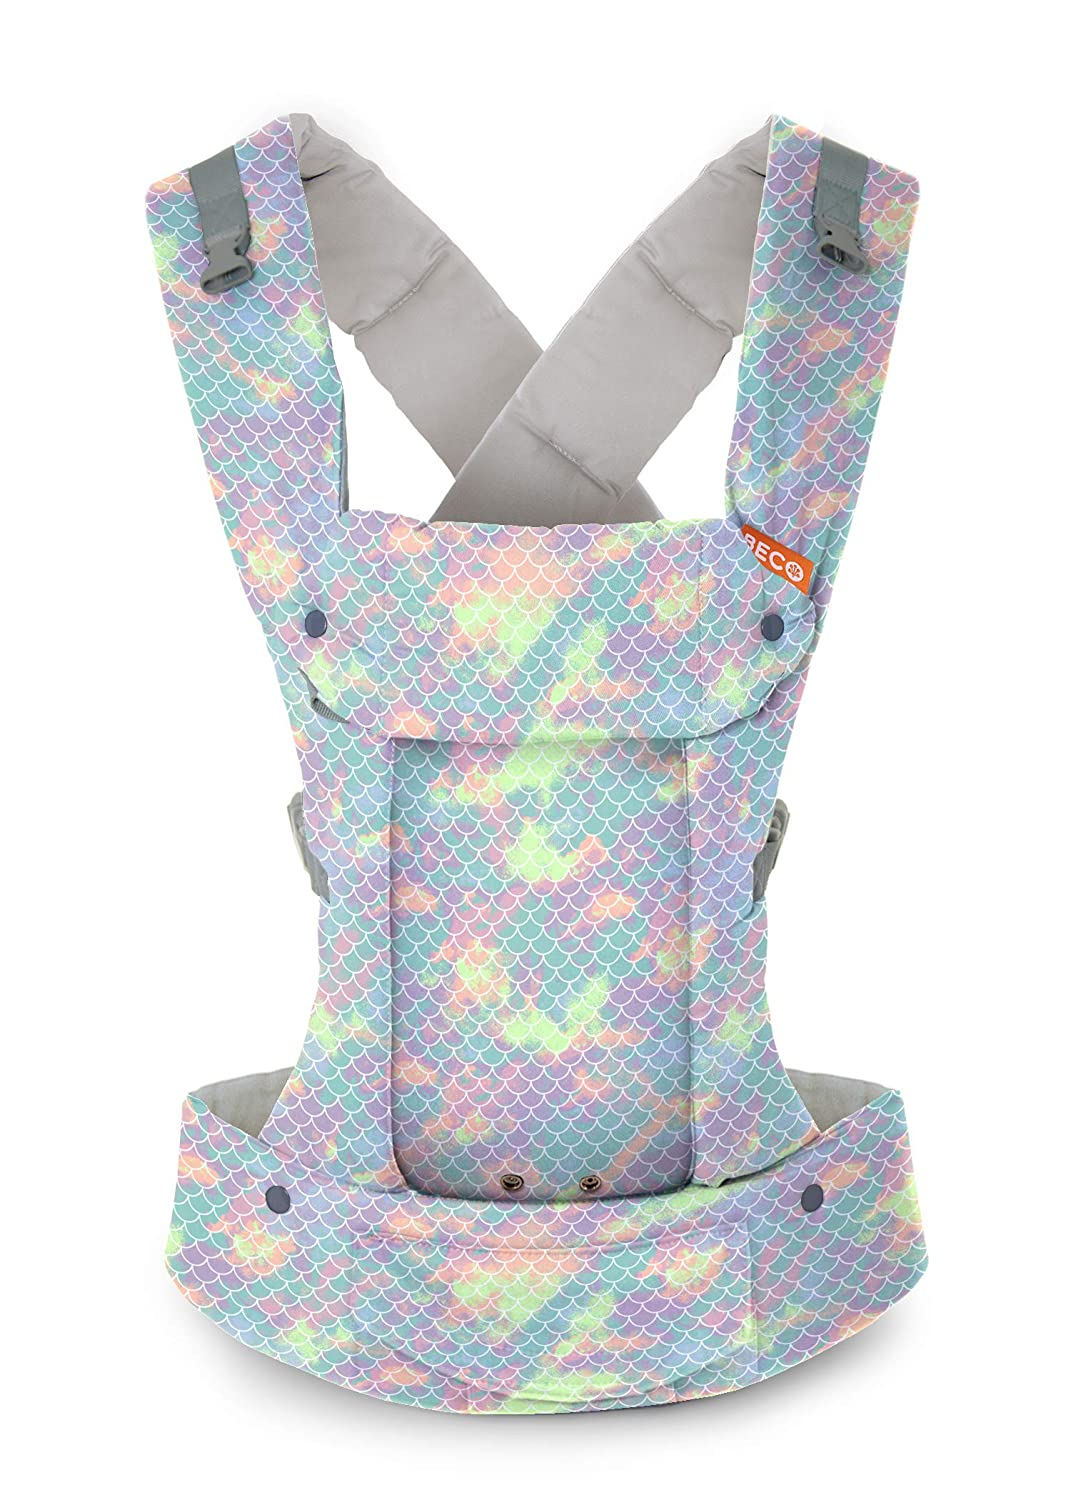 45cf6538d81 Amazon.com   Gemini Performance Baby Carrier by Beco - (Mermaid Sorbet -  Multi-Position Soft Structured Sling w Adjustable Straps   Comfort Padding  for ...